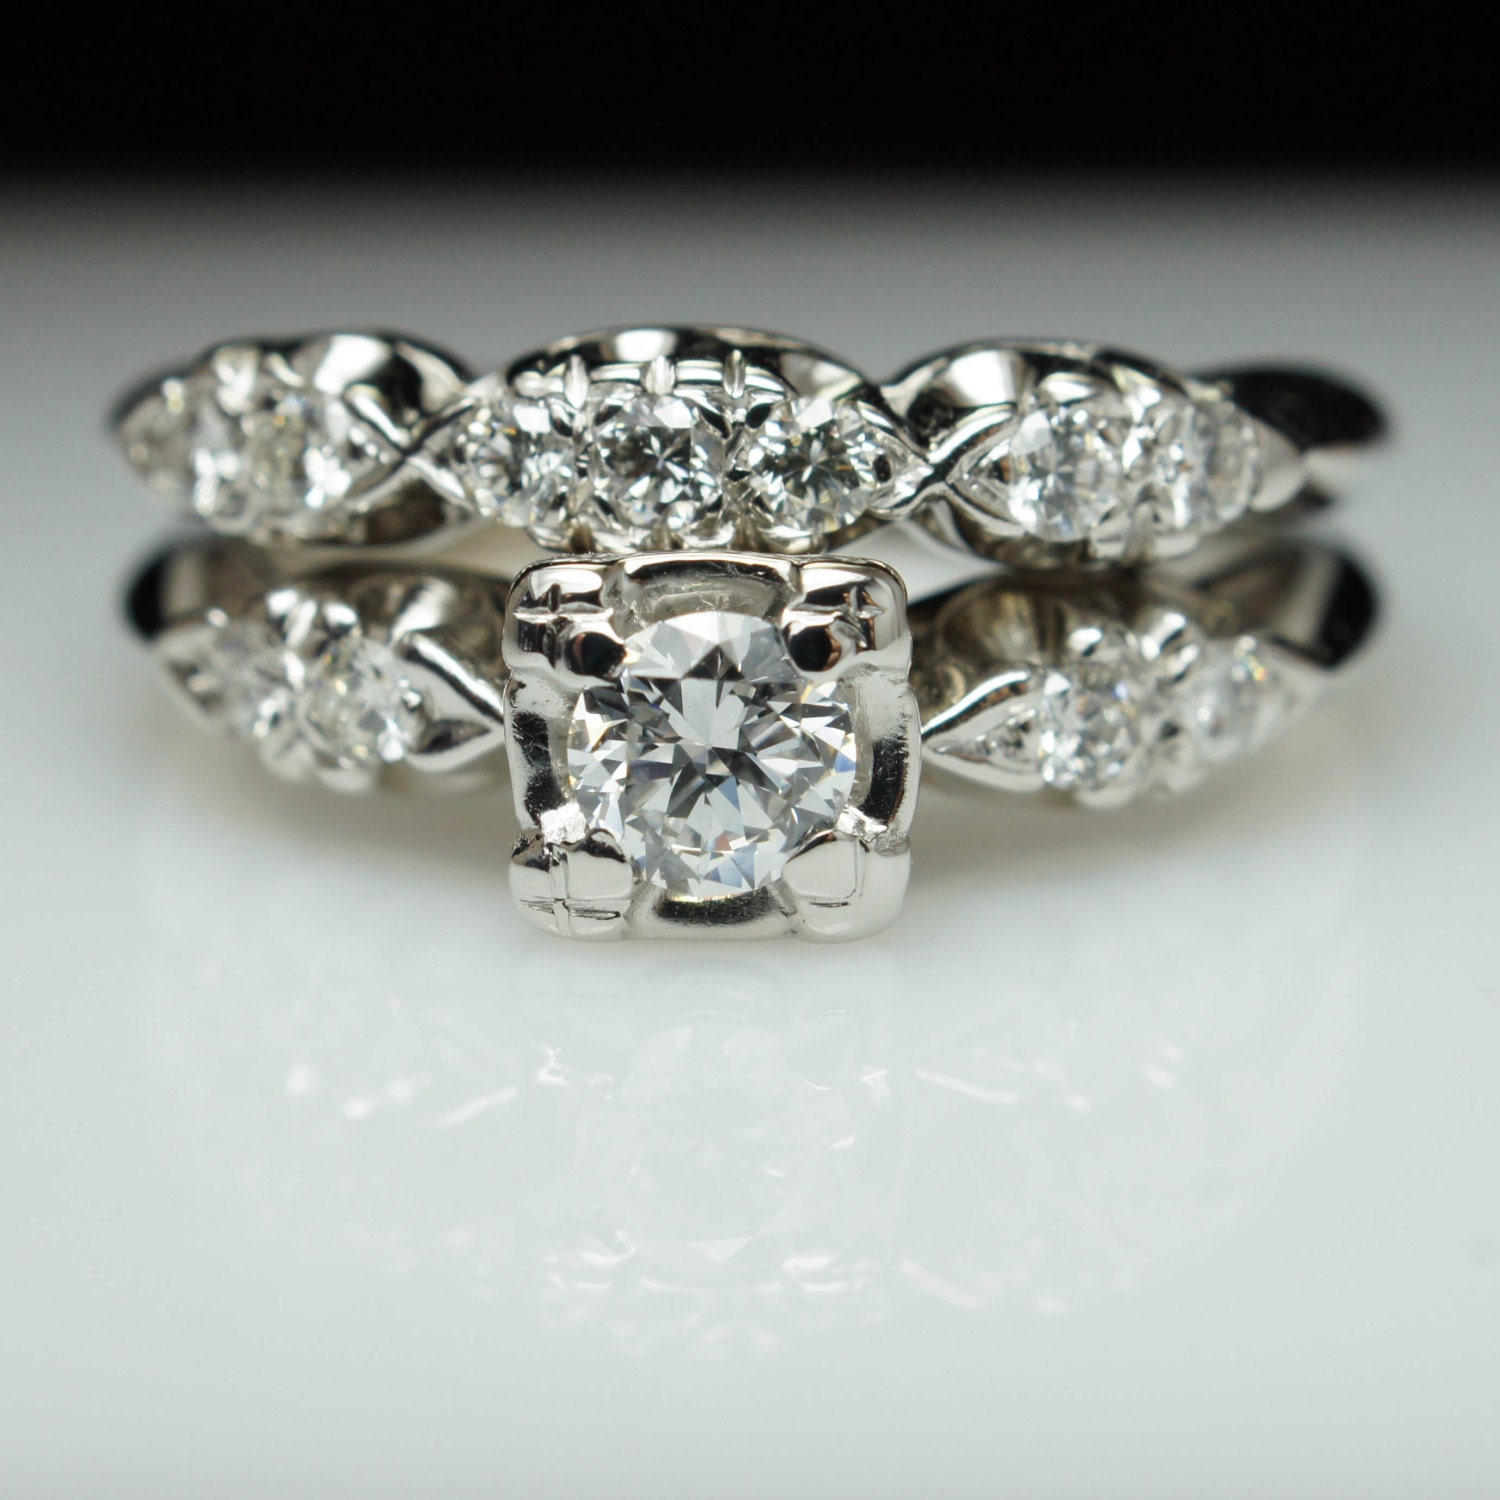 Vintage Wedding Ring Sets: Vintage Art Deco Diamond Bridal Set Engagement Ring & Matching